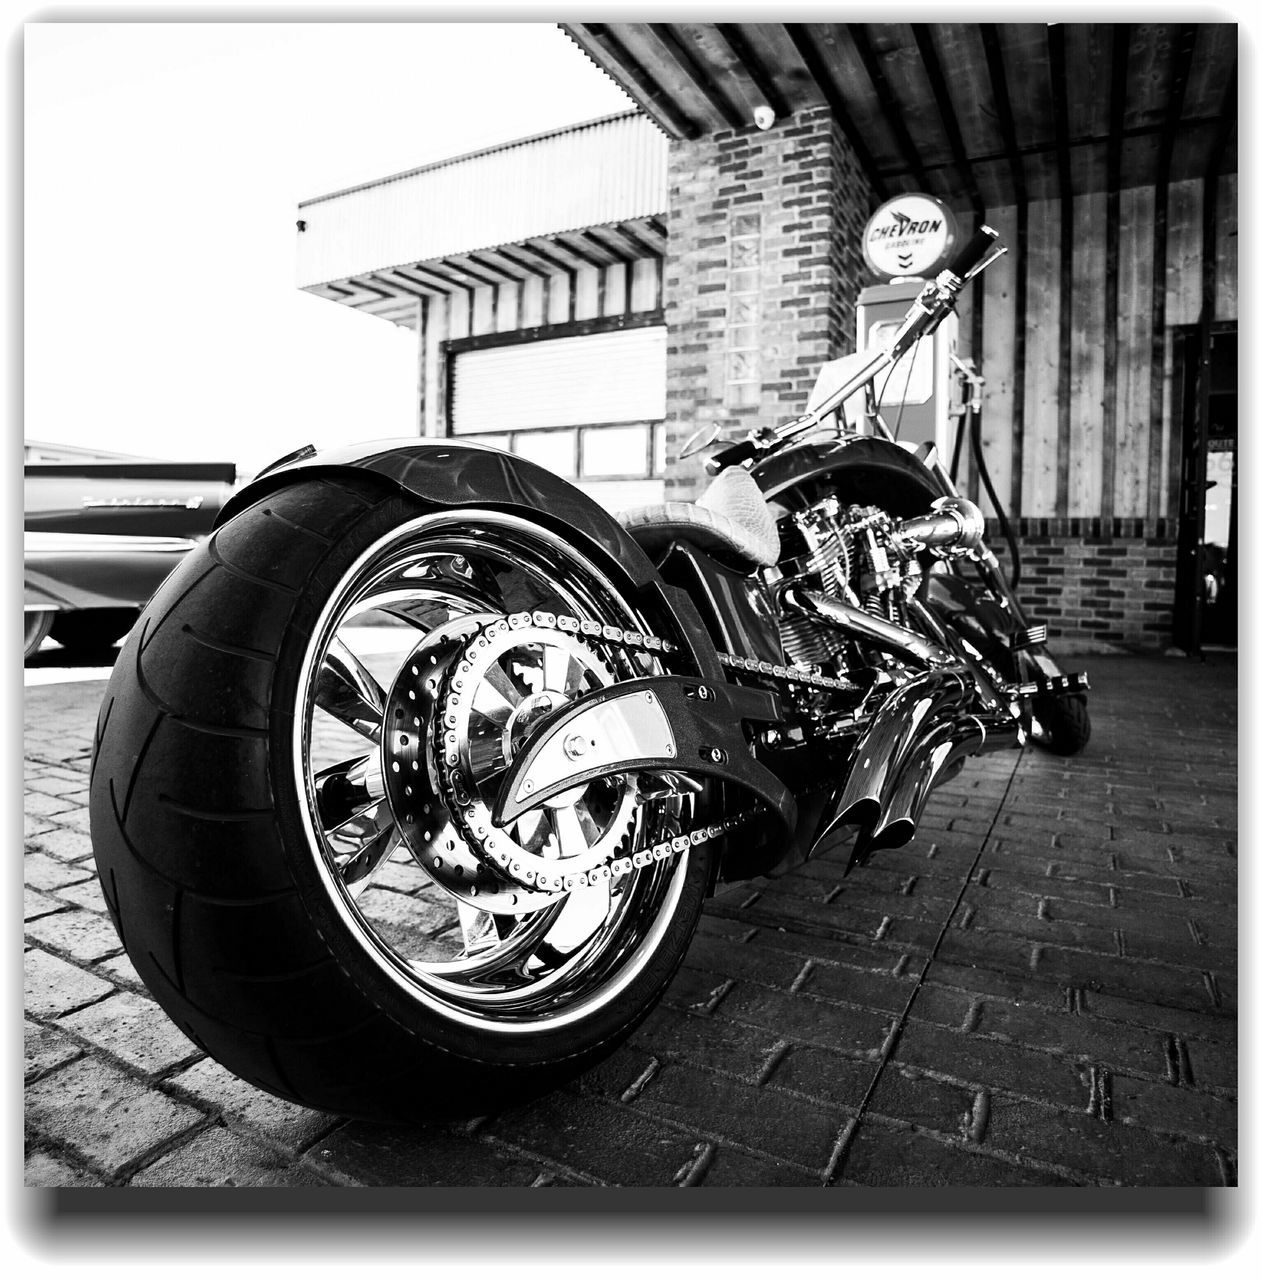 transportation, land vehicle, mode of transport, day, motorcycle, building exterior, outdoors, built structure, street, architecture, men, scooter, one person, people